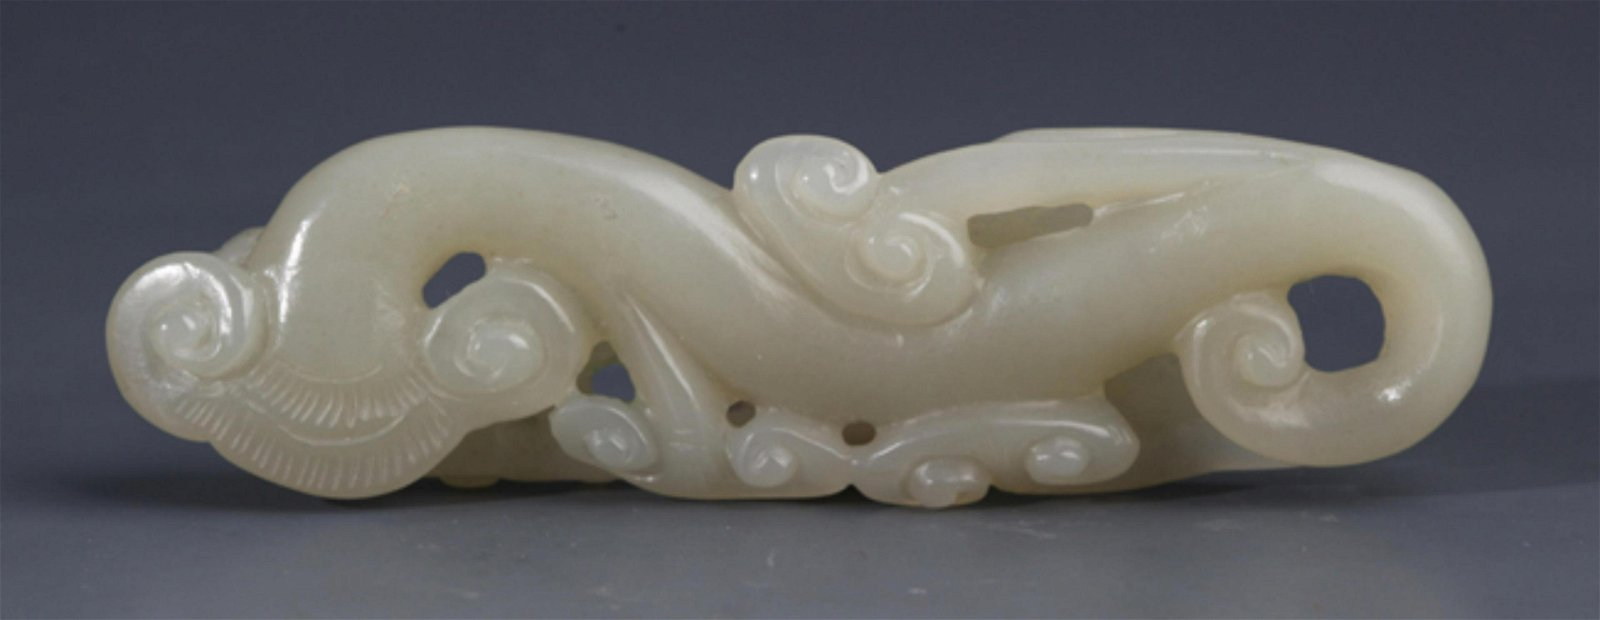 A FINELY HOLLOW CARVED HETIAN GREENISH WHITE JADE